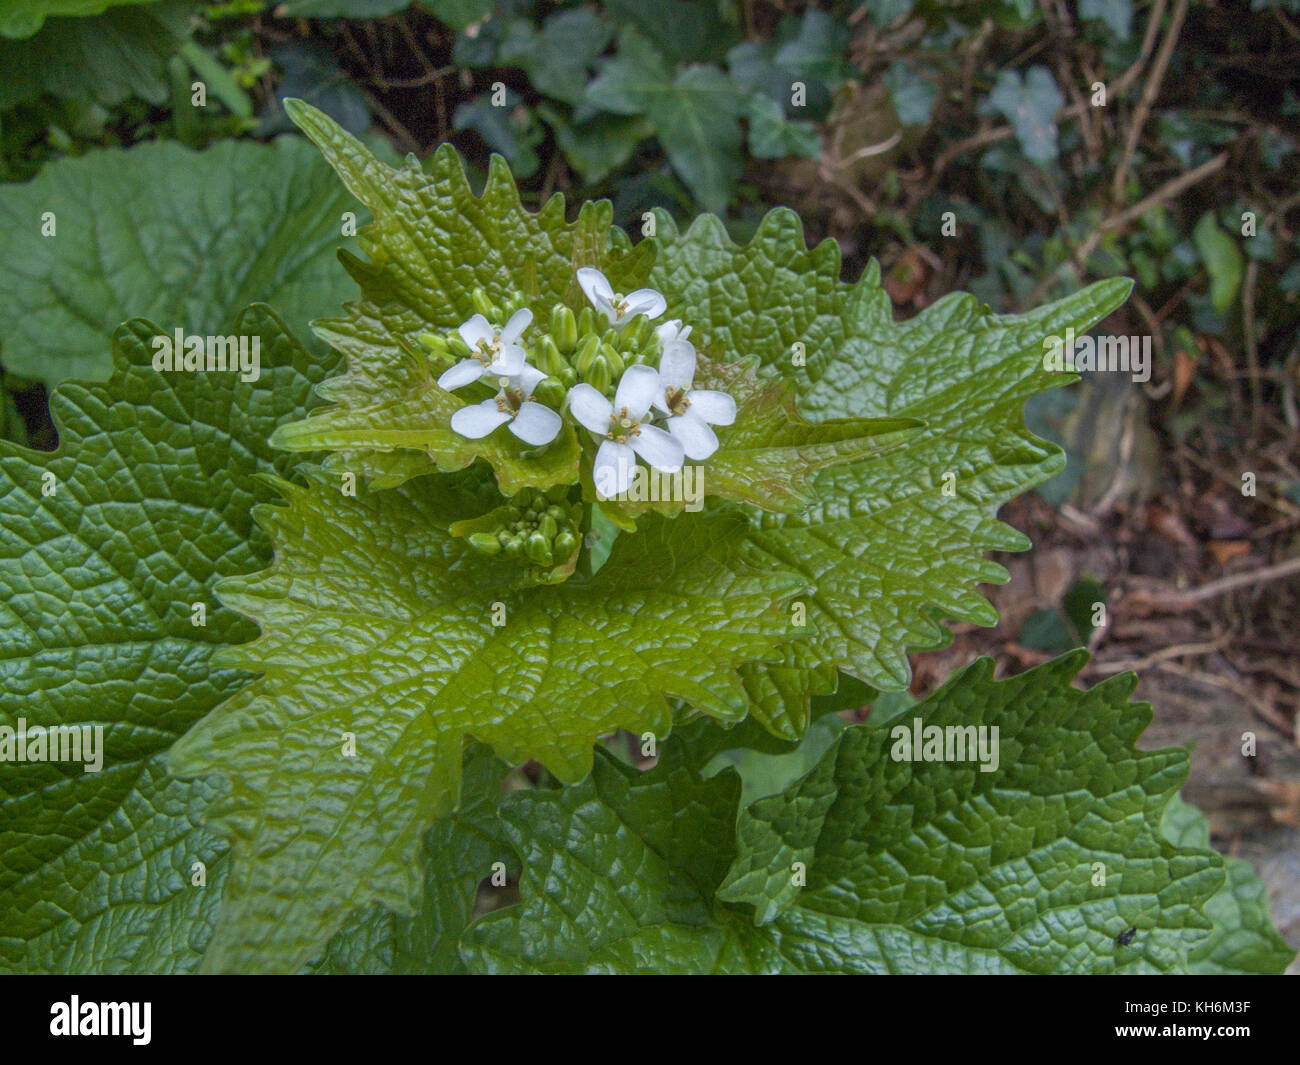 Example of the foraged plant Hedge Garlic (Alliaria petiolata) growing in a hedgerow. Leaves have a mild garlic - Stock Image